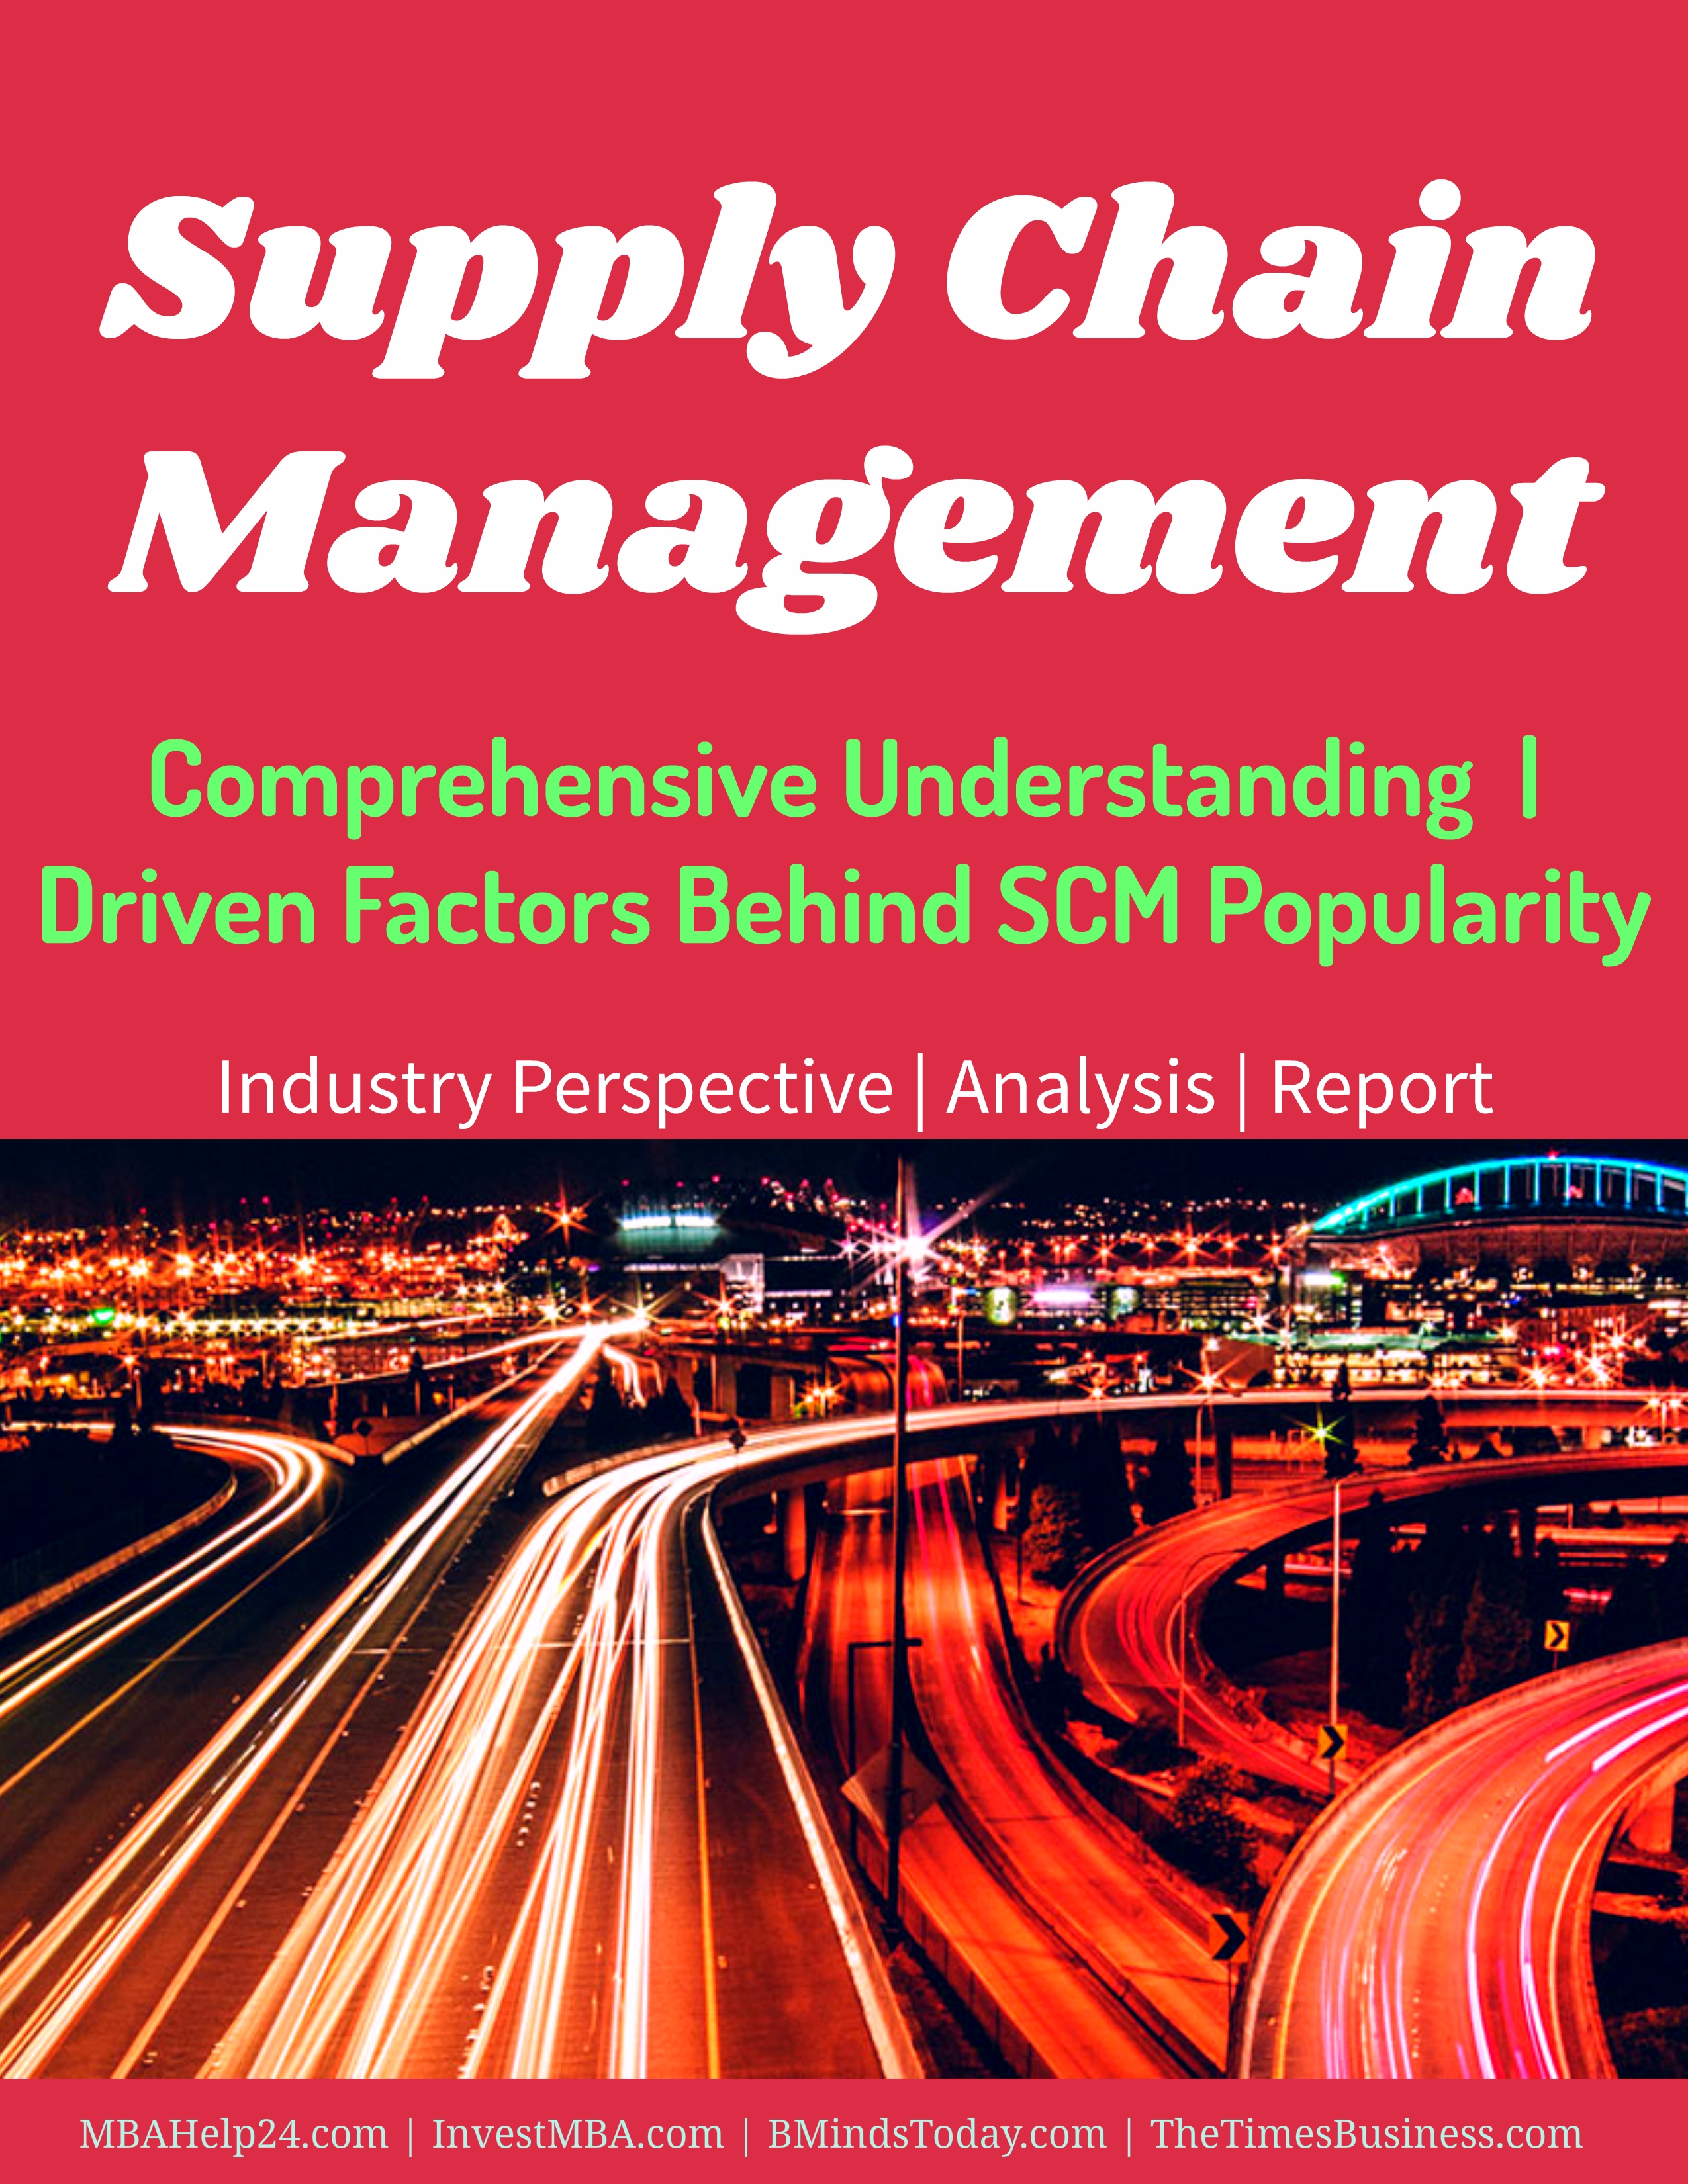 Supply chain managemen- comprehensive understanding, definition, overview, key forces, driven factors behind SCM supply chain Supply Chain Management | Comprehensive Understanding  | Driven Factors Supply chain managemen comprehensive understanding definition overview key forces driven factors behind SCM